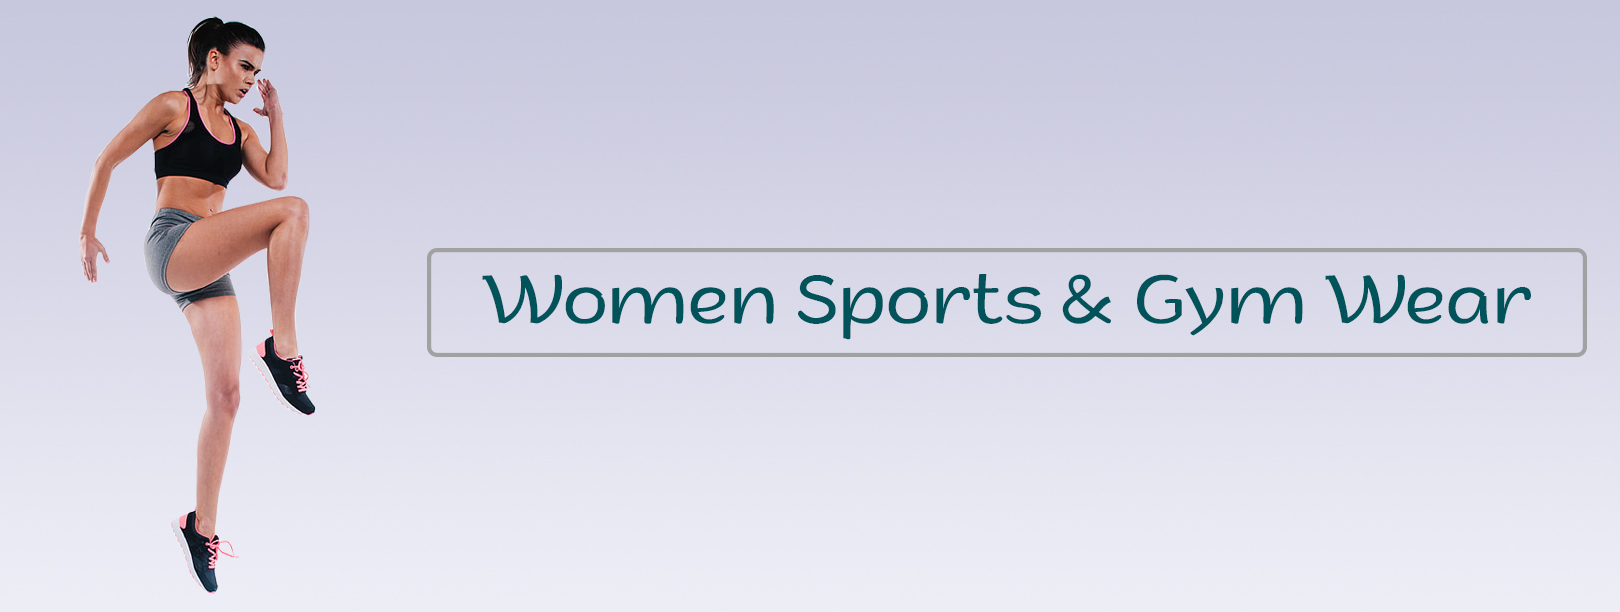 Flipkart Women Sports And Gym Wear